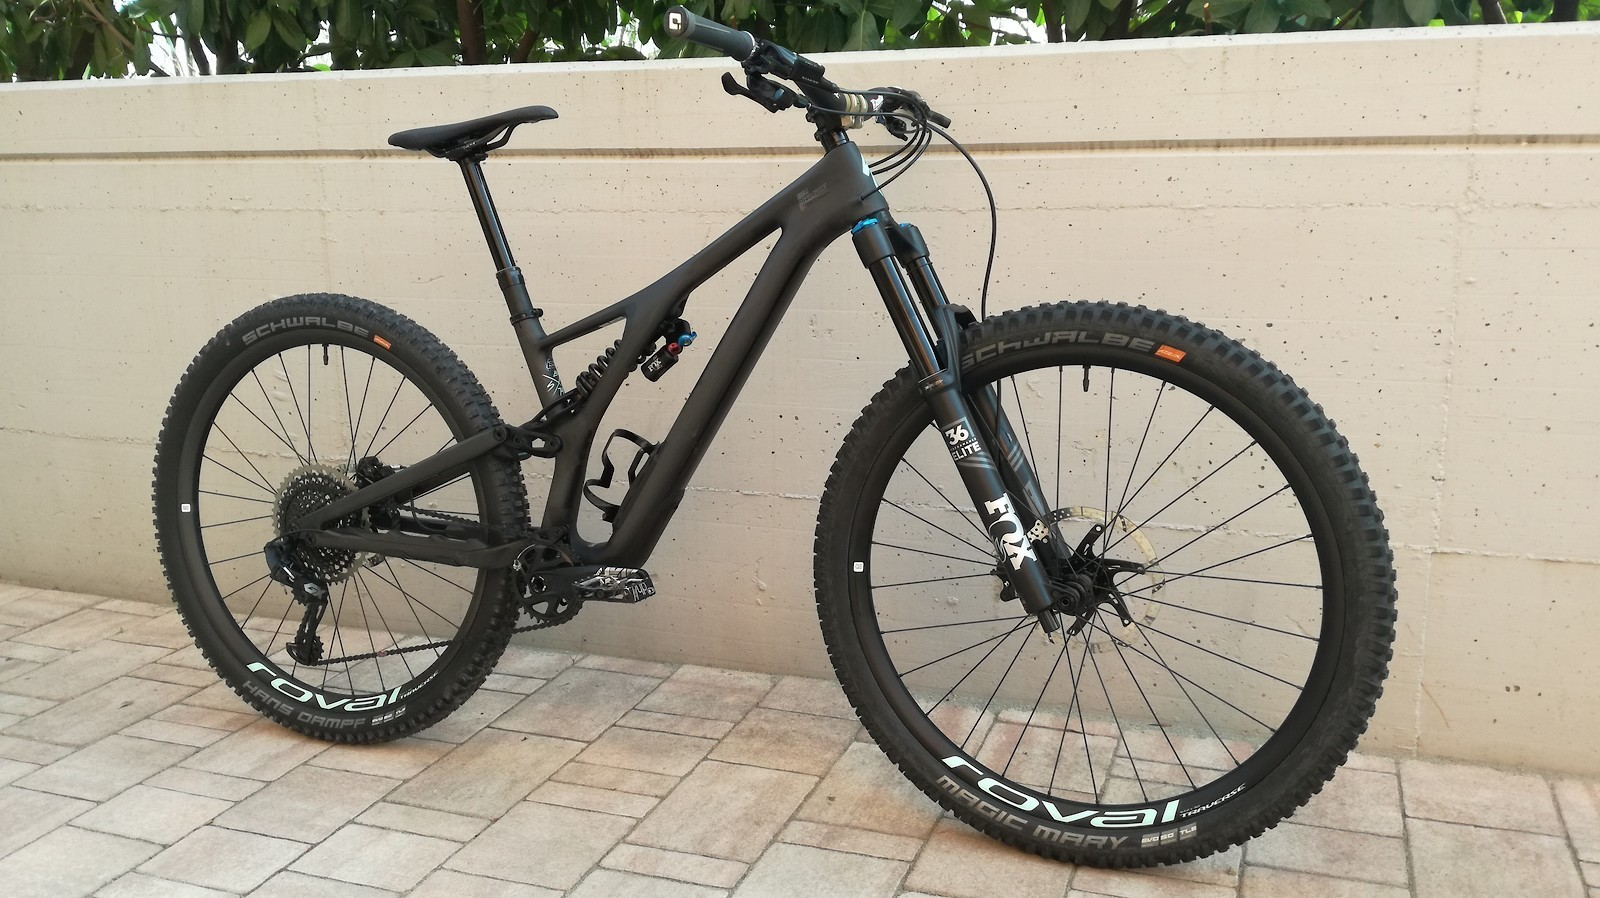 Specialized Stumpjumper EVO Pro 29 - 2019 Vital Bike of the Day Collection - Mountain Biking Pictures - Vital MTB